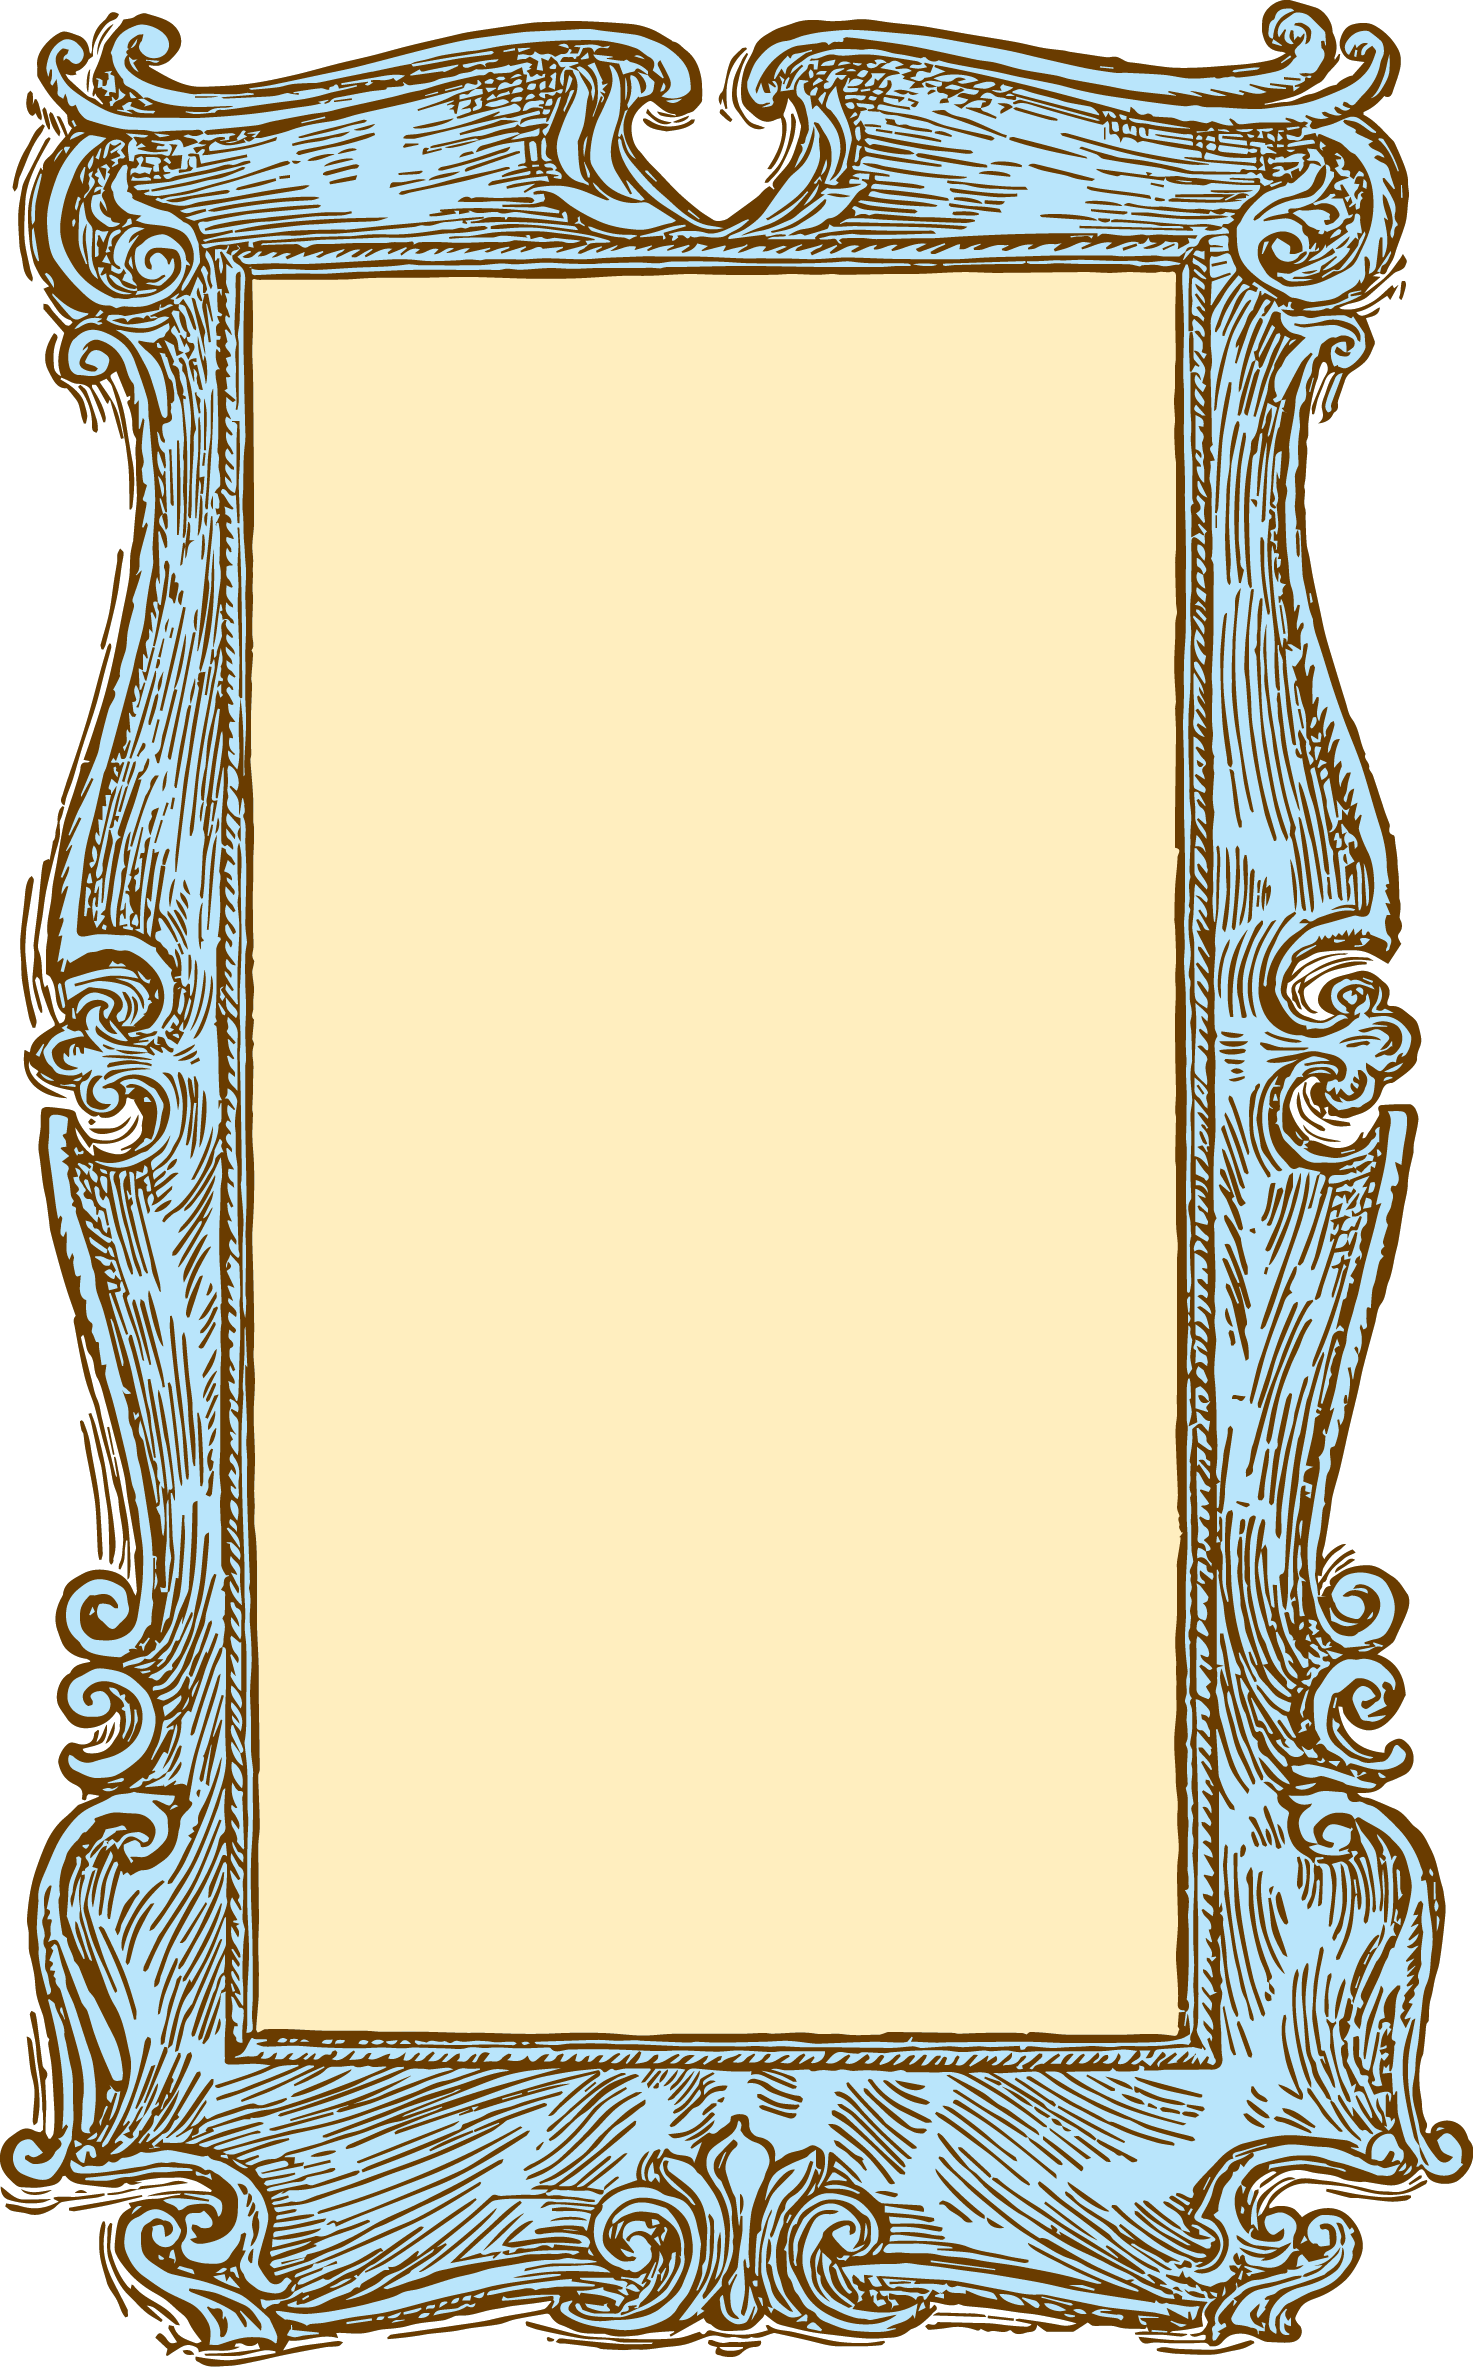 Free Vintage Frame Comes In Multiple Colors In 2020 Clip Art Vintage Vintage Frames Clip Art